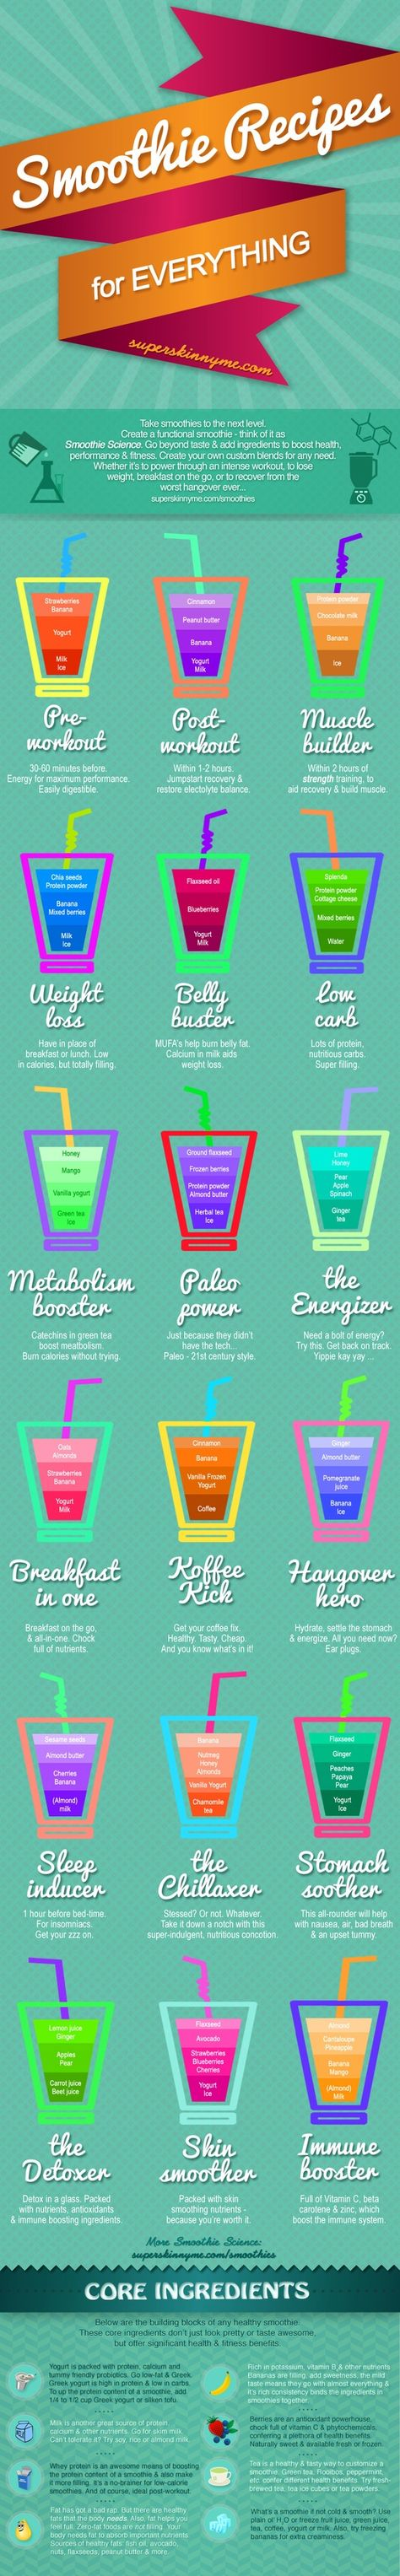 Smoothie blends for any reason:  weight loss, detox, immunity boost, energizing, pre- and post-workout... more!